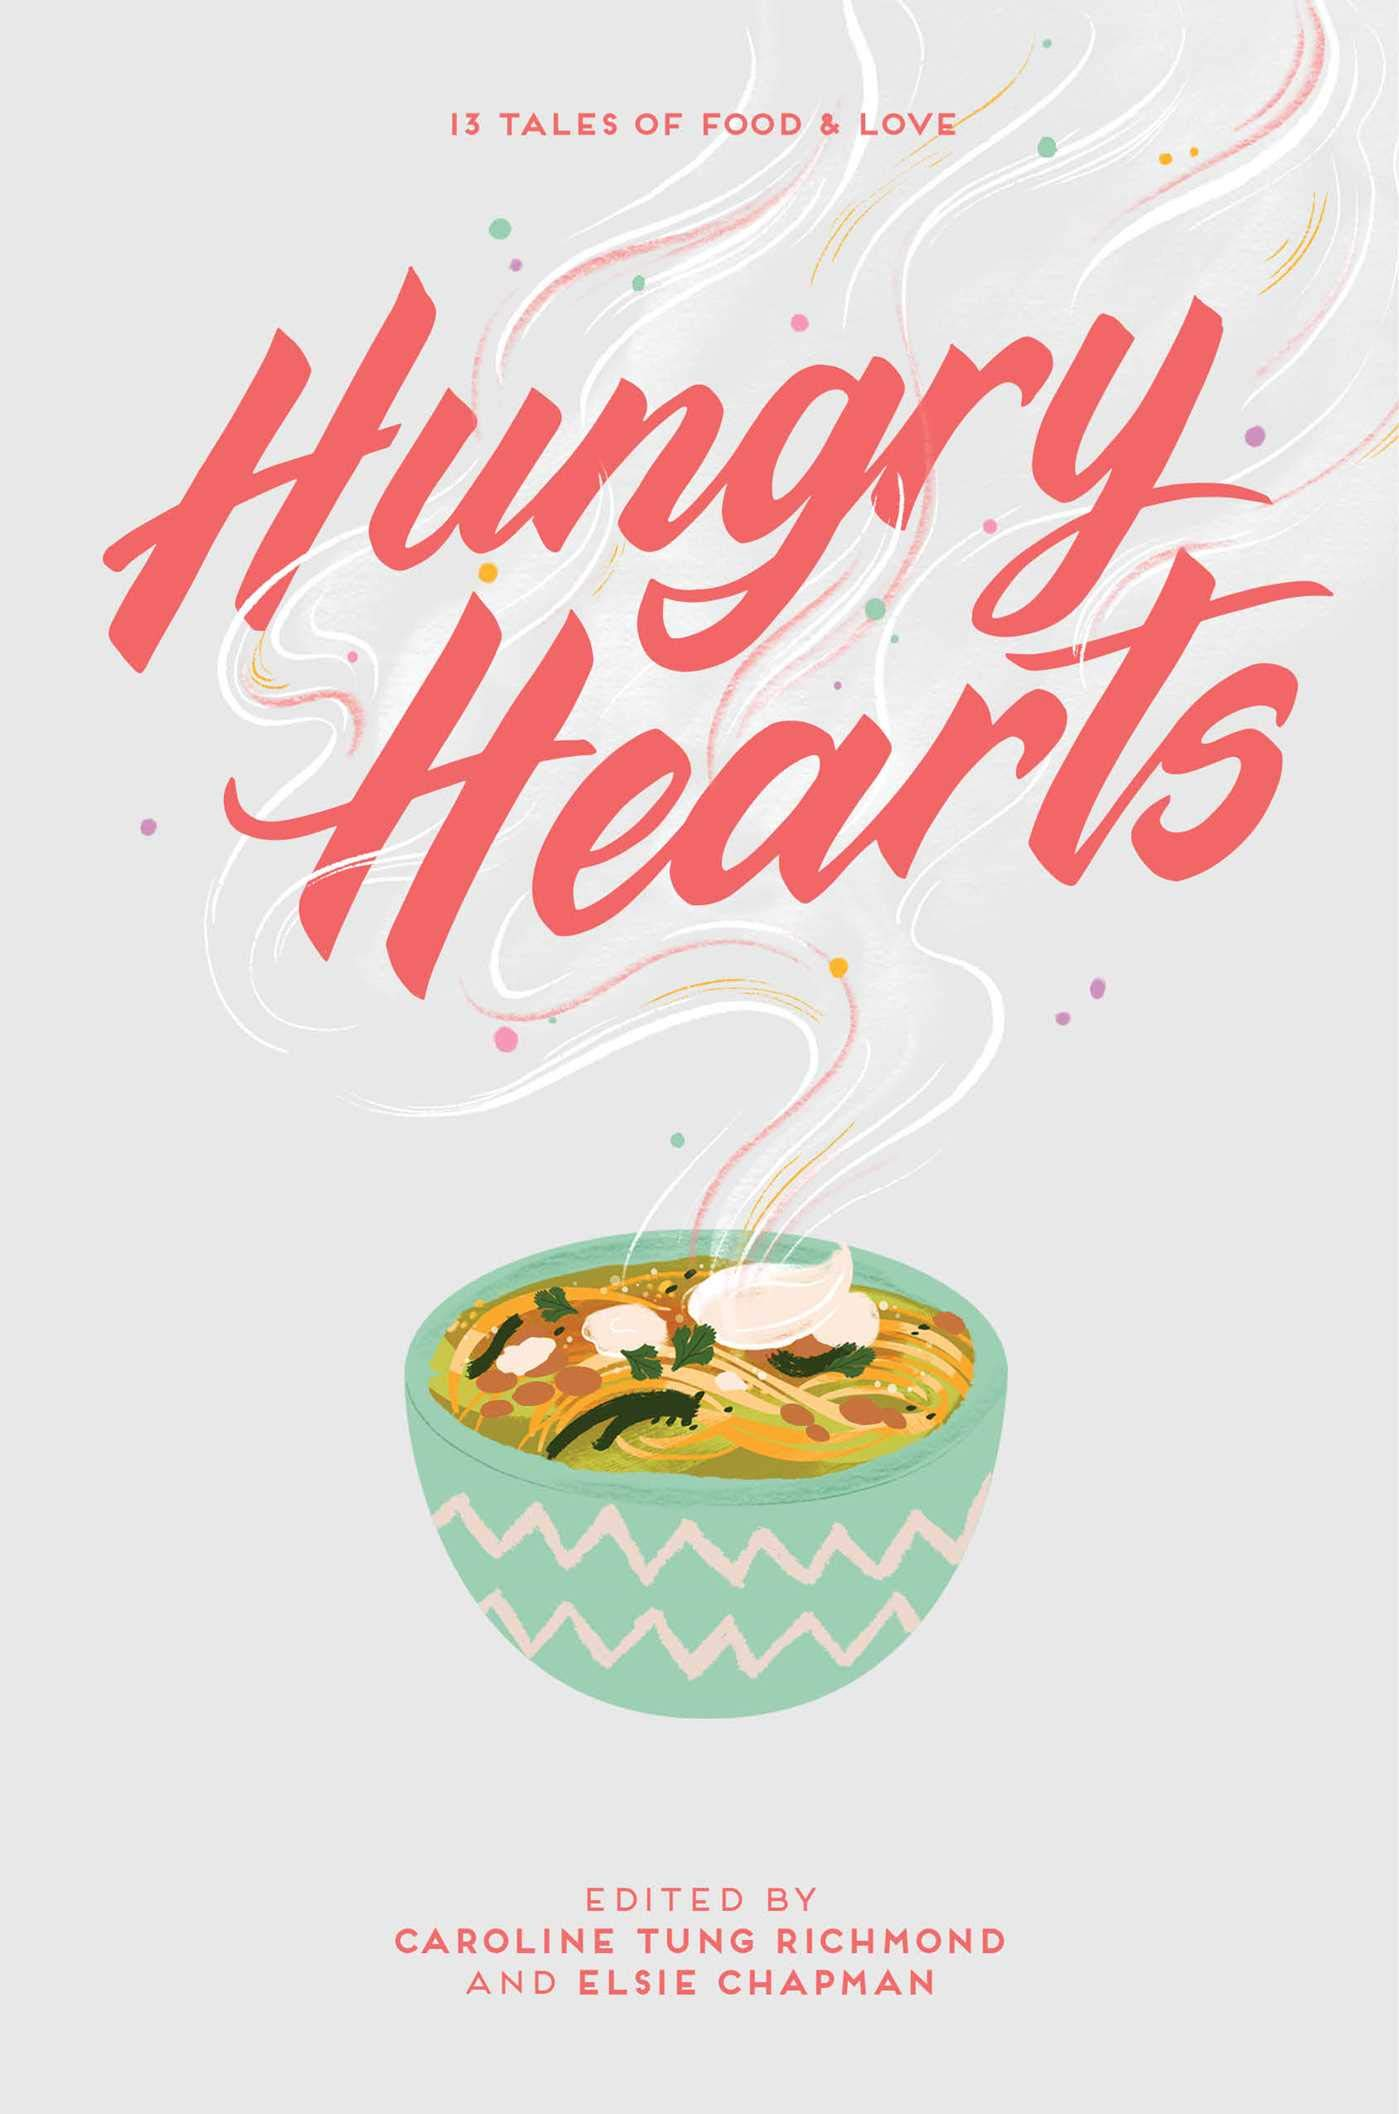 Amazon.com: Hungry Hearts: 13 Tales of Food & Love (9781534421851):  Chapman, Elsie, Richmond, Caroline Tung, Menon, Sandhya, Ali, S. K.,  Chupeco, Rin, McLemore, Anna-Marie, Roanhorse, Rebecca, Farizan, Sara,  Coles, Jay, Alsaid, Adi,